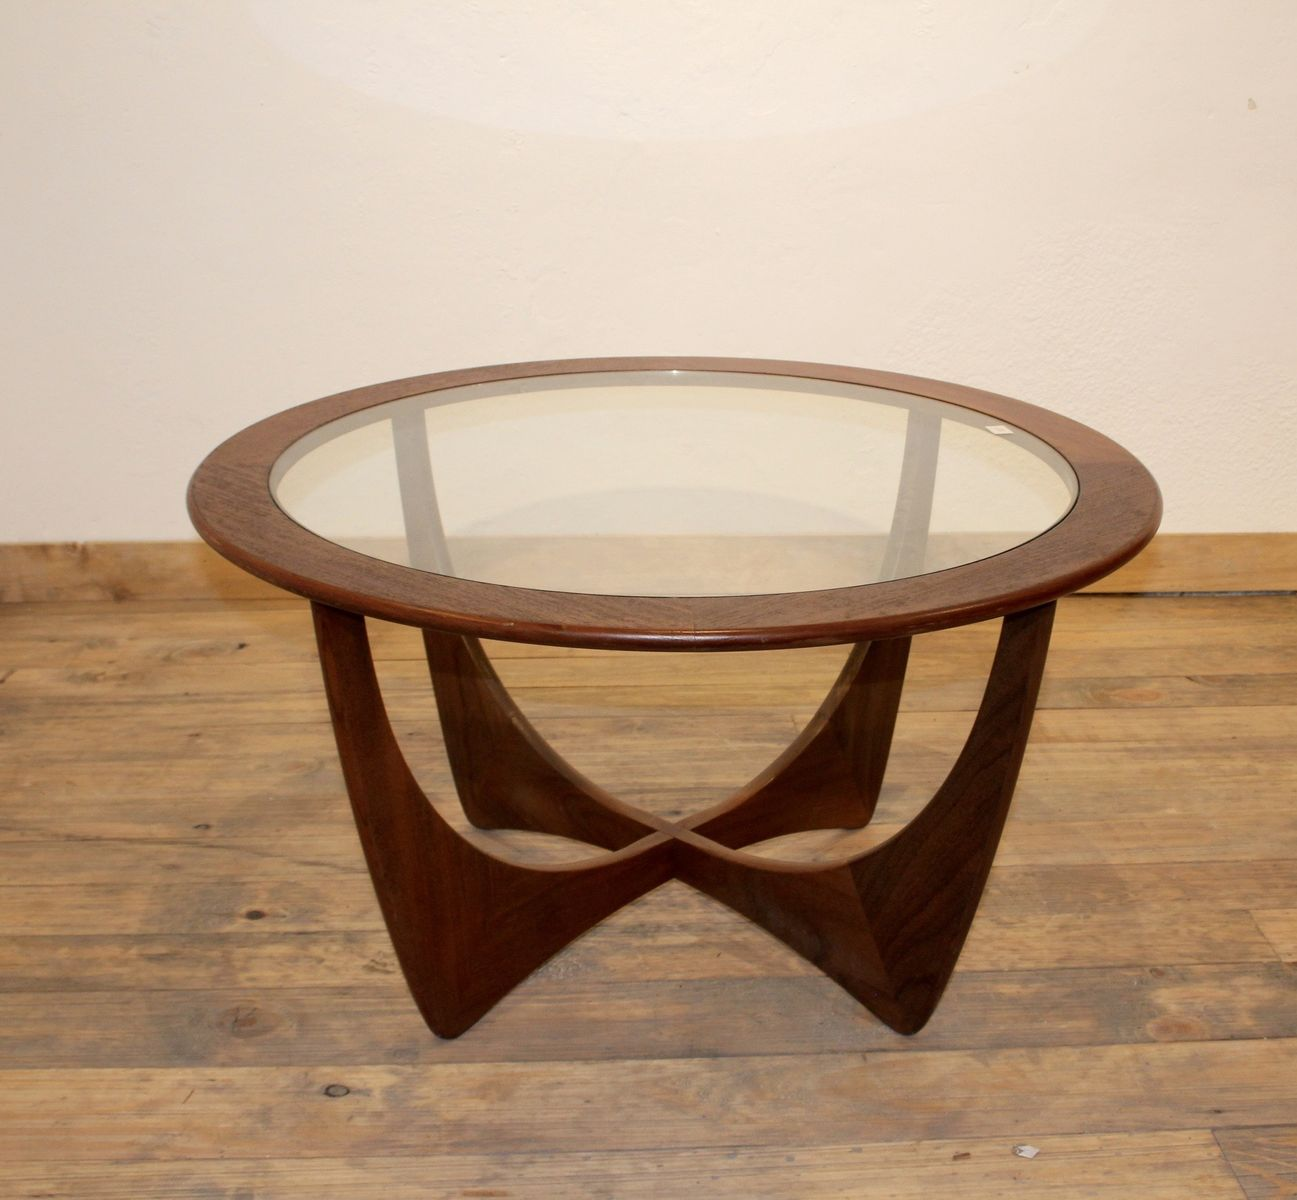 Astro coffee table from g plan 1960s for sale at pamono astro coffee table from g plan 1960s geotapseo Choice Image